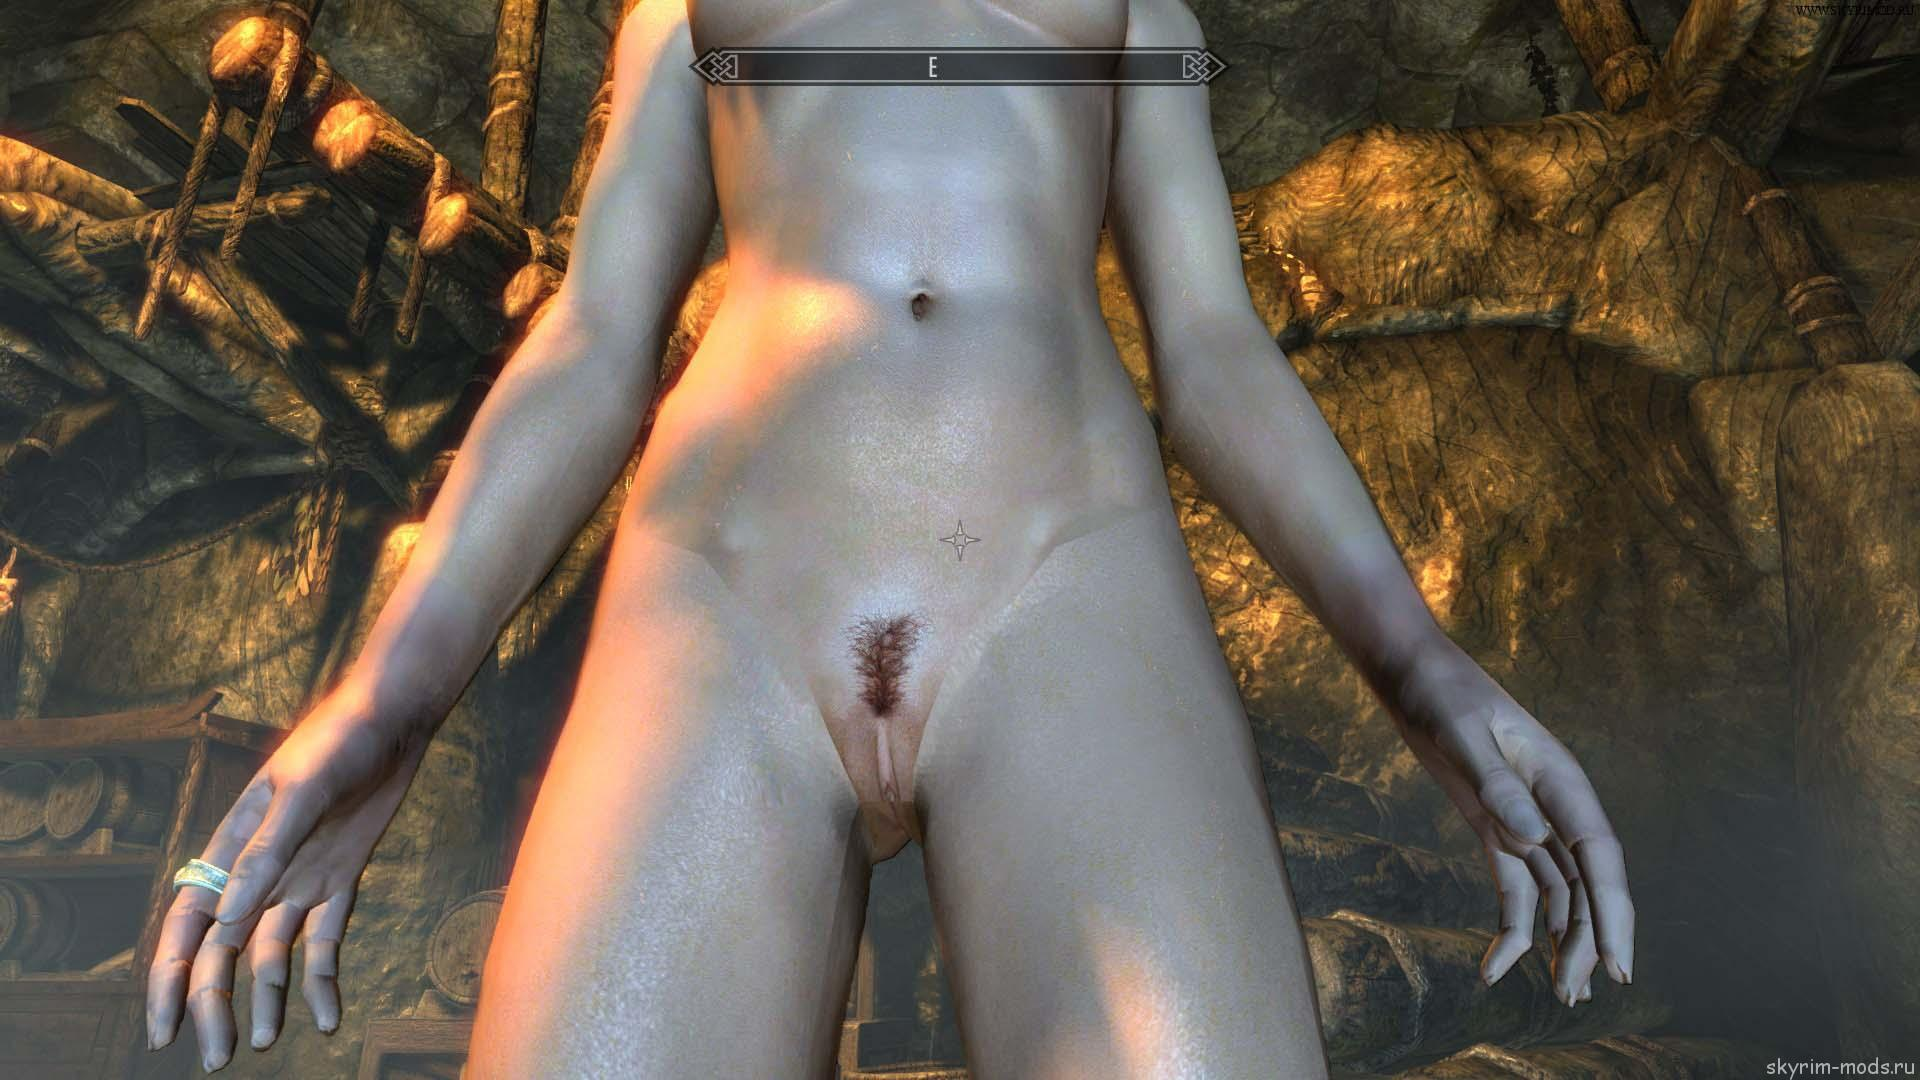 Uncharted nude mod erotic scene